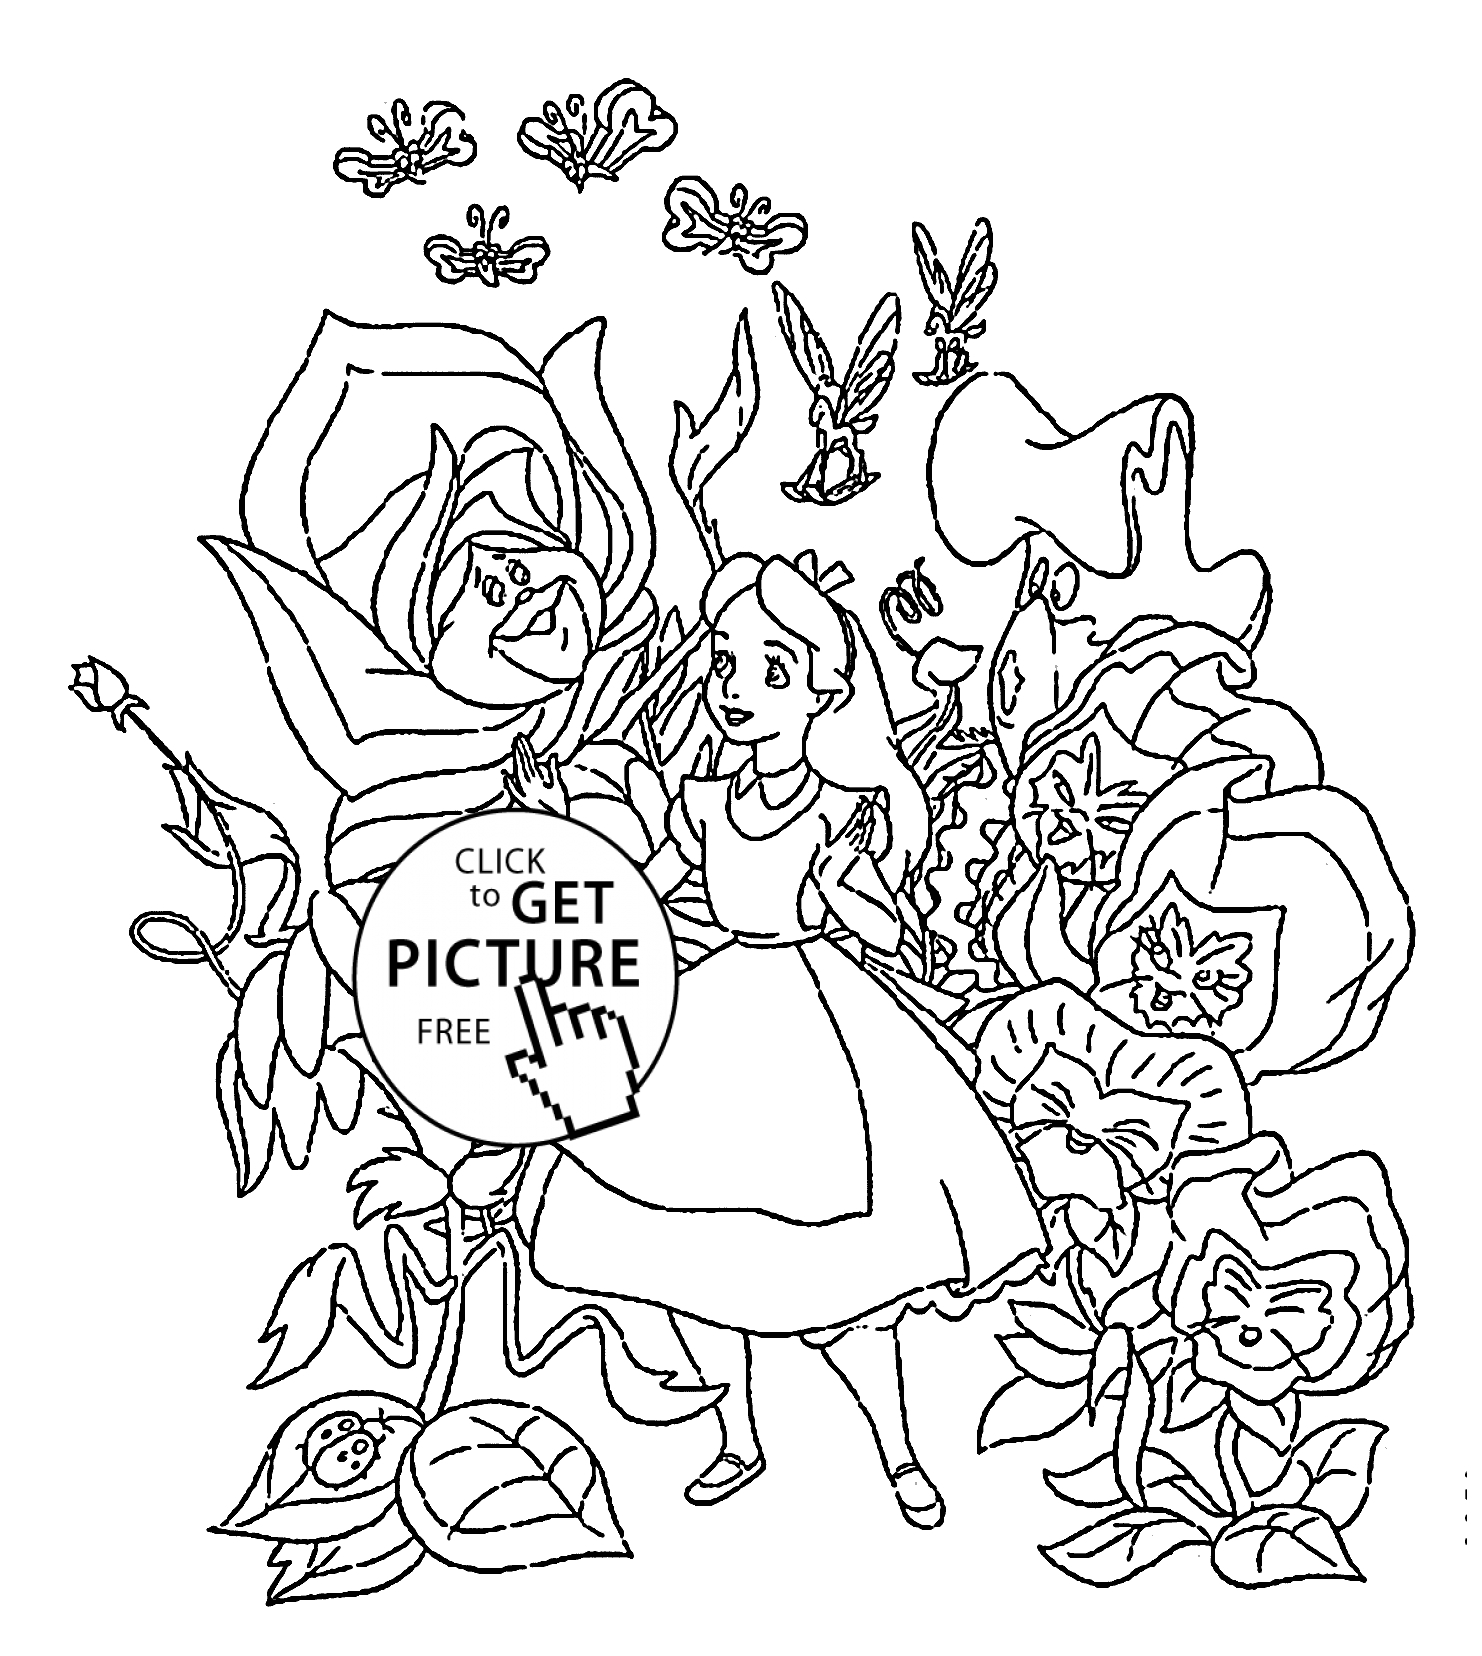 colouring pages alice in wonderland free printable alice in wonderland coloring pages for kids wonderland in pages colouring alice